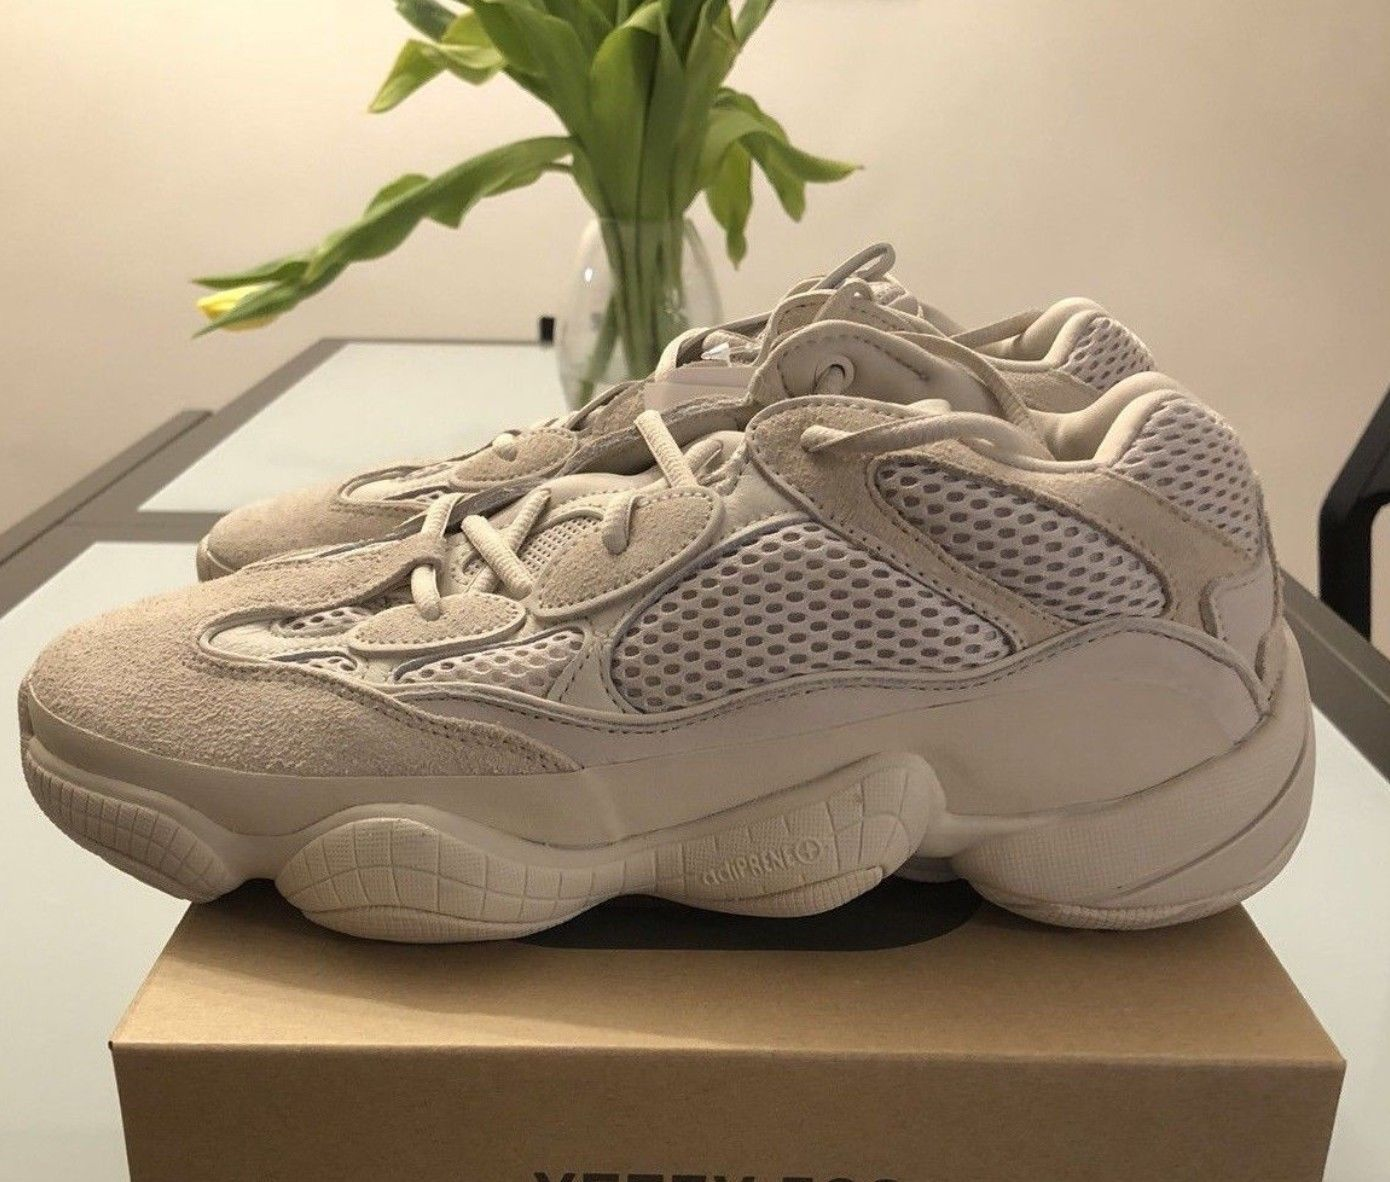 innovative design a7882 e9a64 Adidas YEEZY 500 'Blush' Desert Rat DB2908 10.5 | sports ...